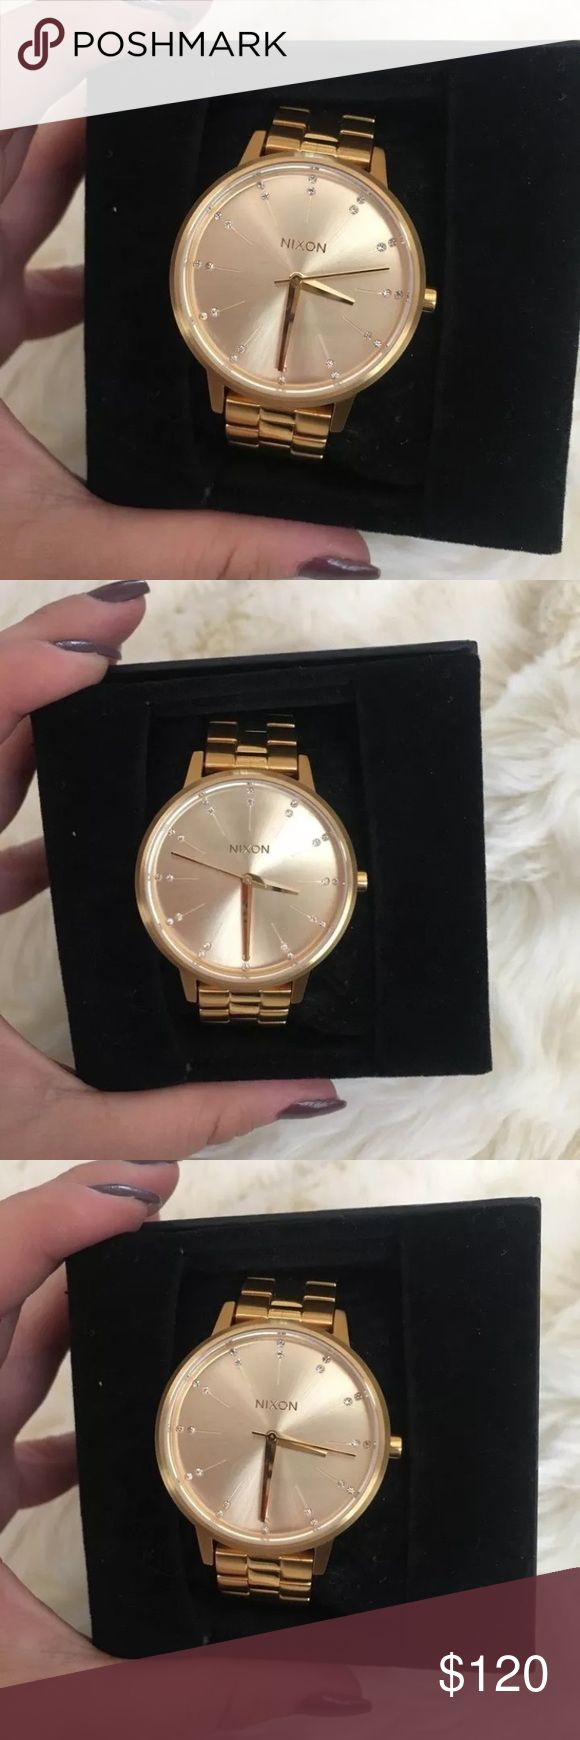 Nixon Women's Wrist Watch - Kensington Style Gold Brand new women's Nixon watch - never used. Extra links included. Nixon Accessories Watches